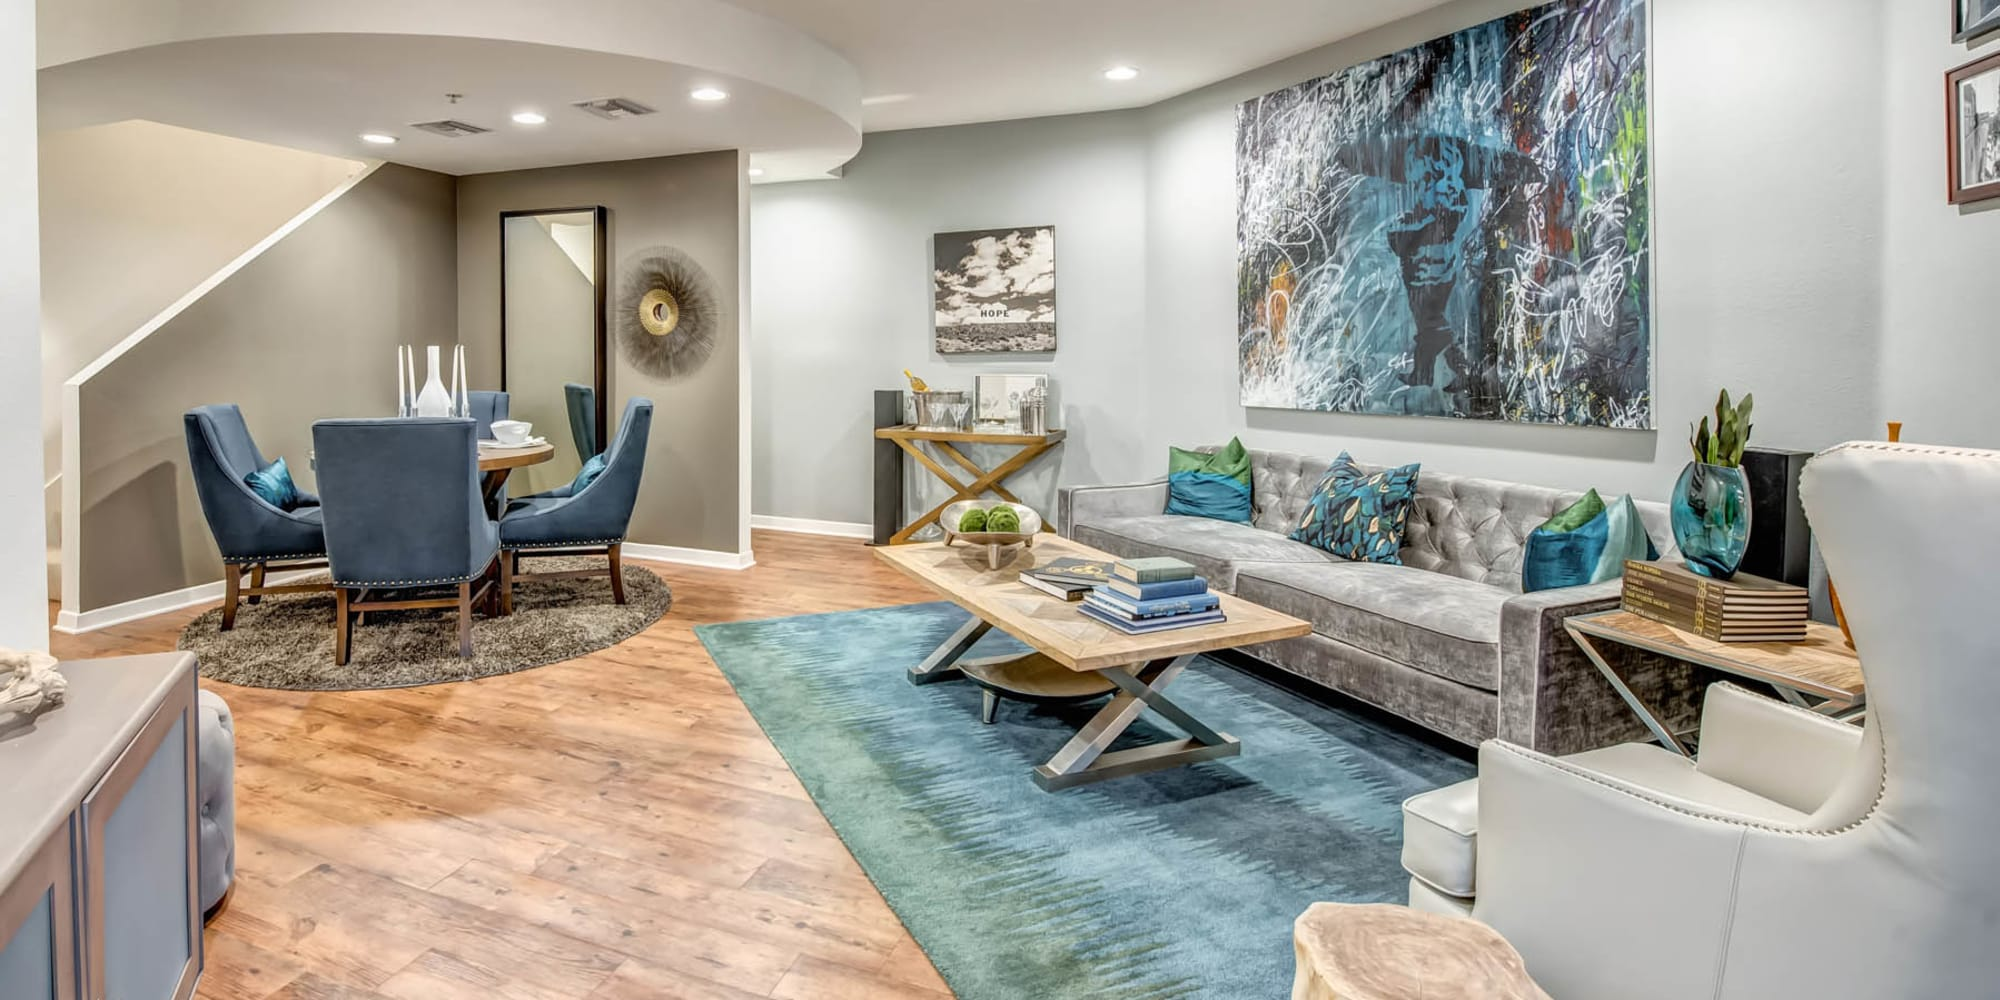 Model luxury townhome with hardwood flooring and exquisite furnishings at Esprit Marina del Rey in Marina Del Rey, California